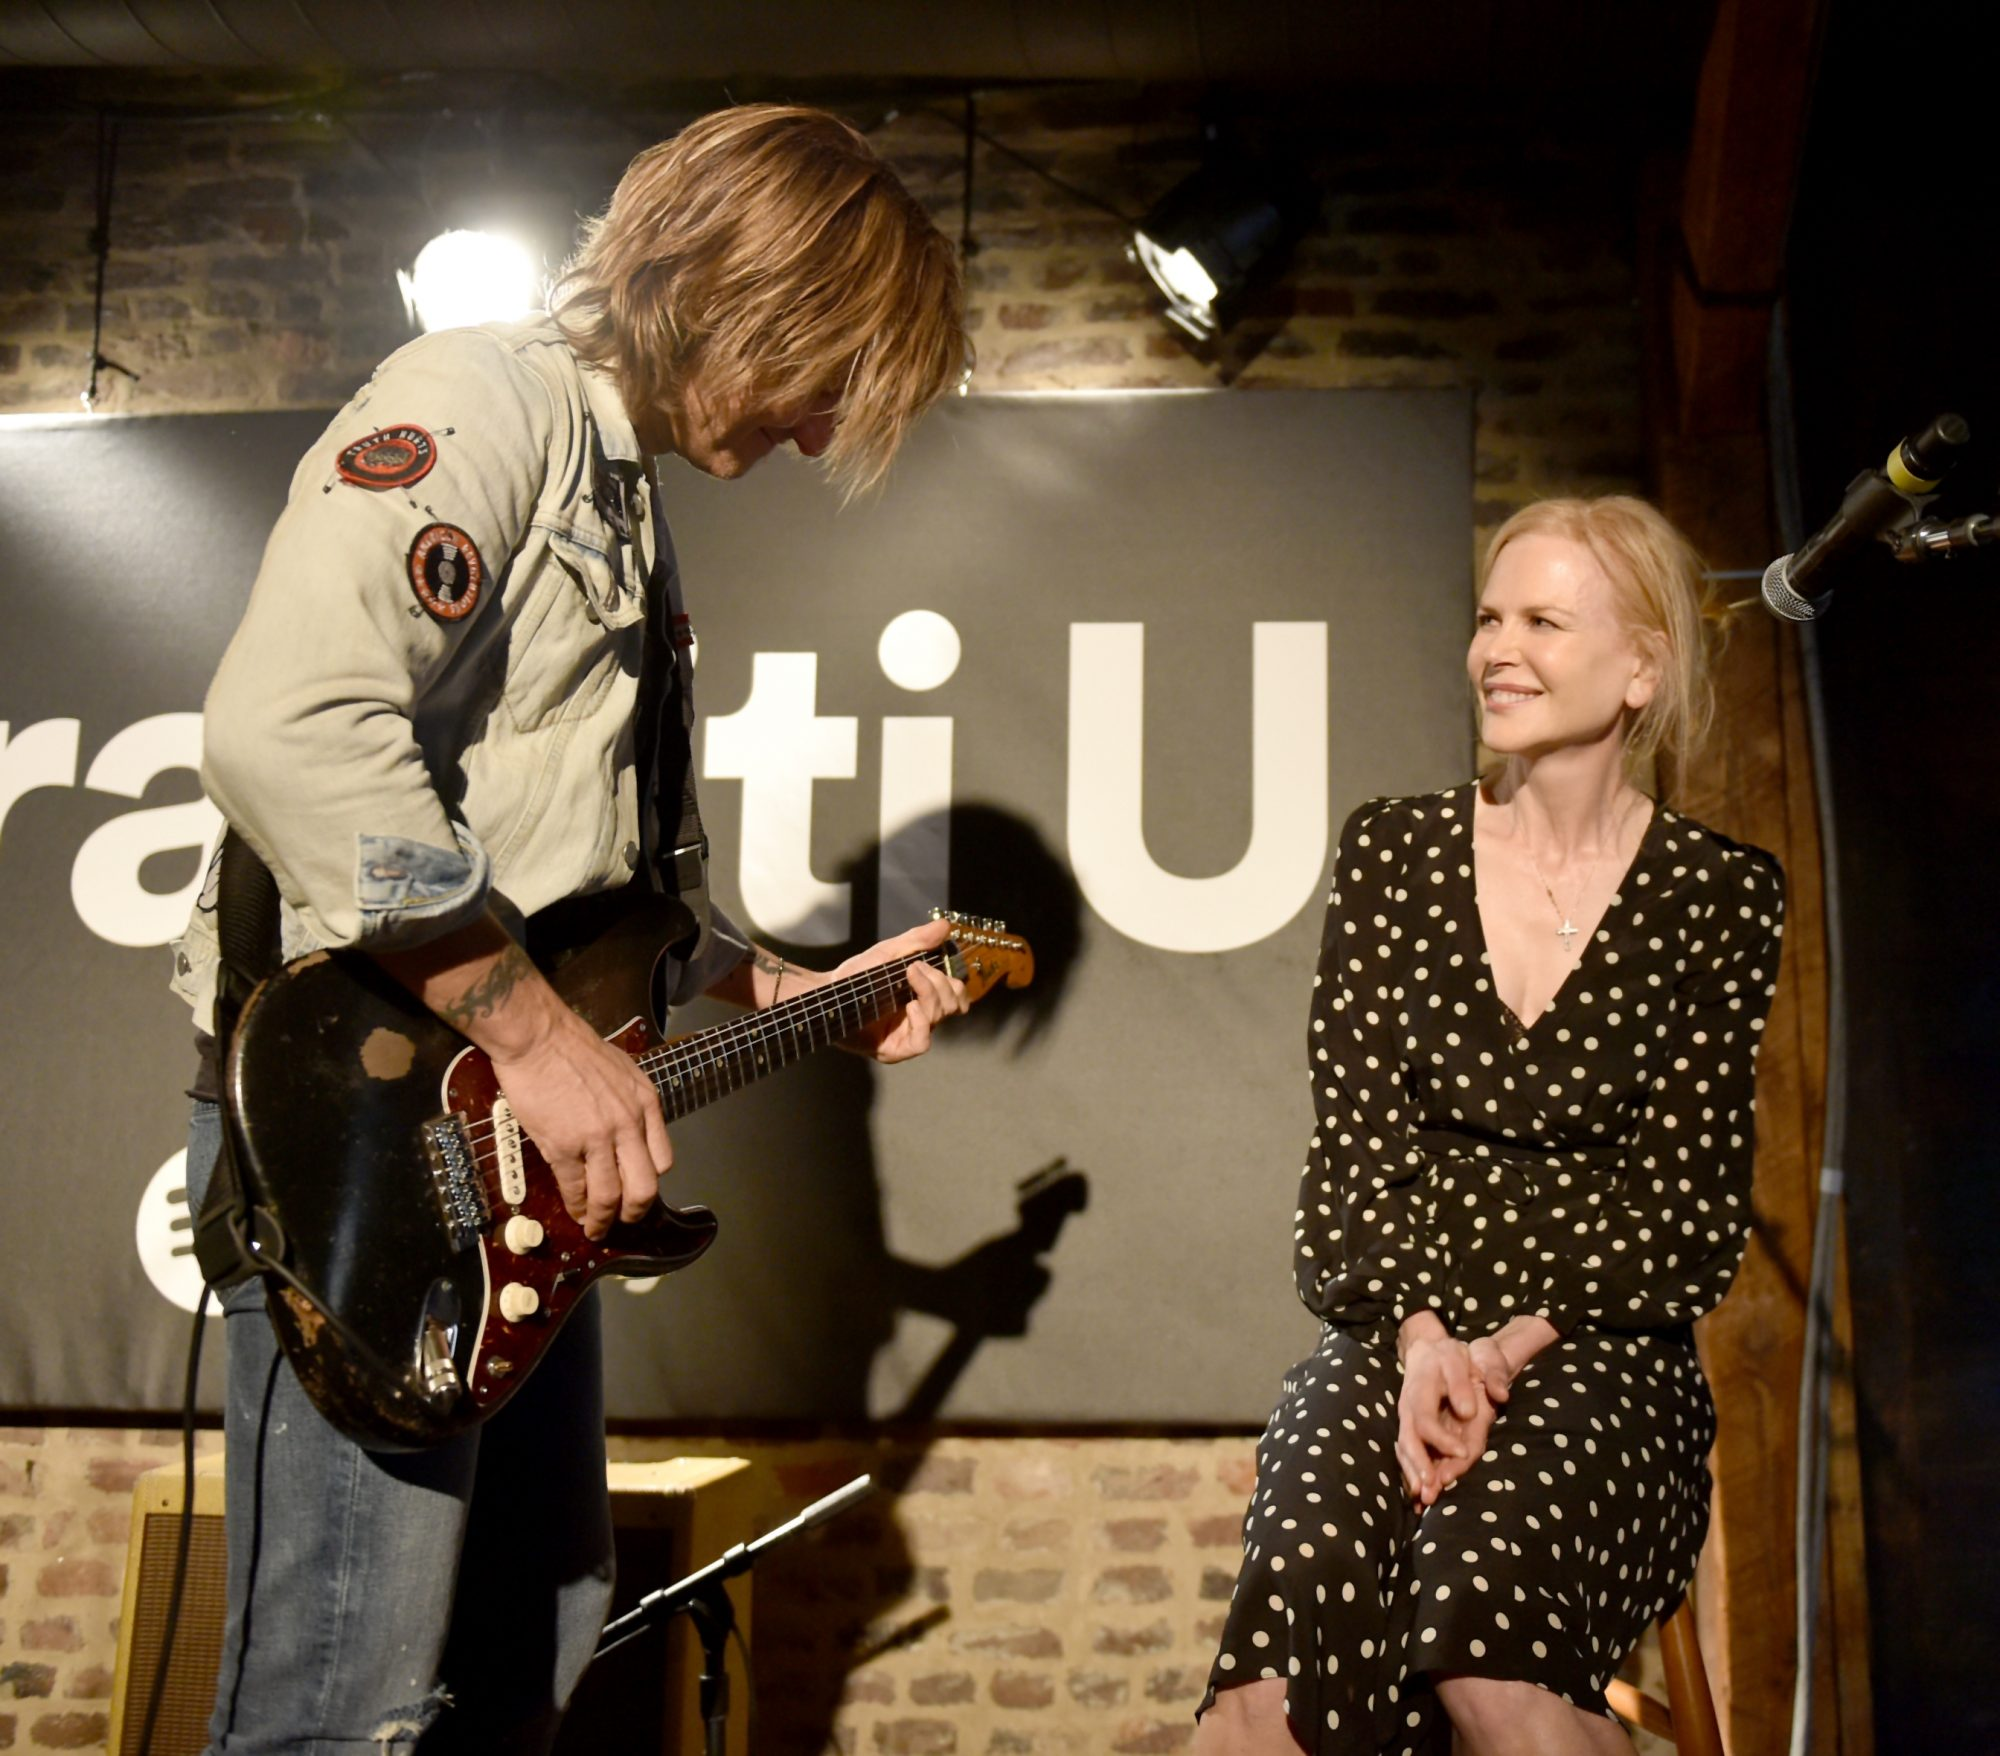 Keith Urban and Nicole Kidman Spotify Event